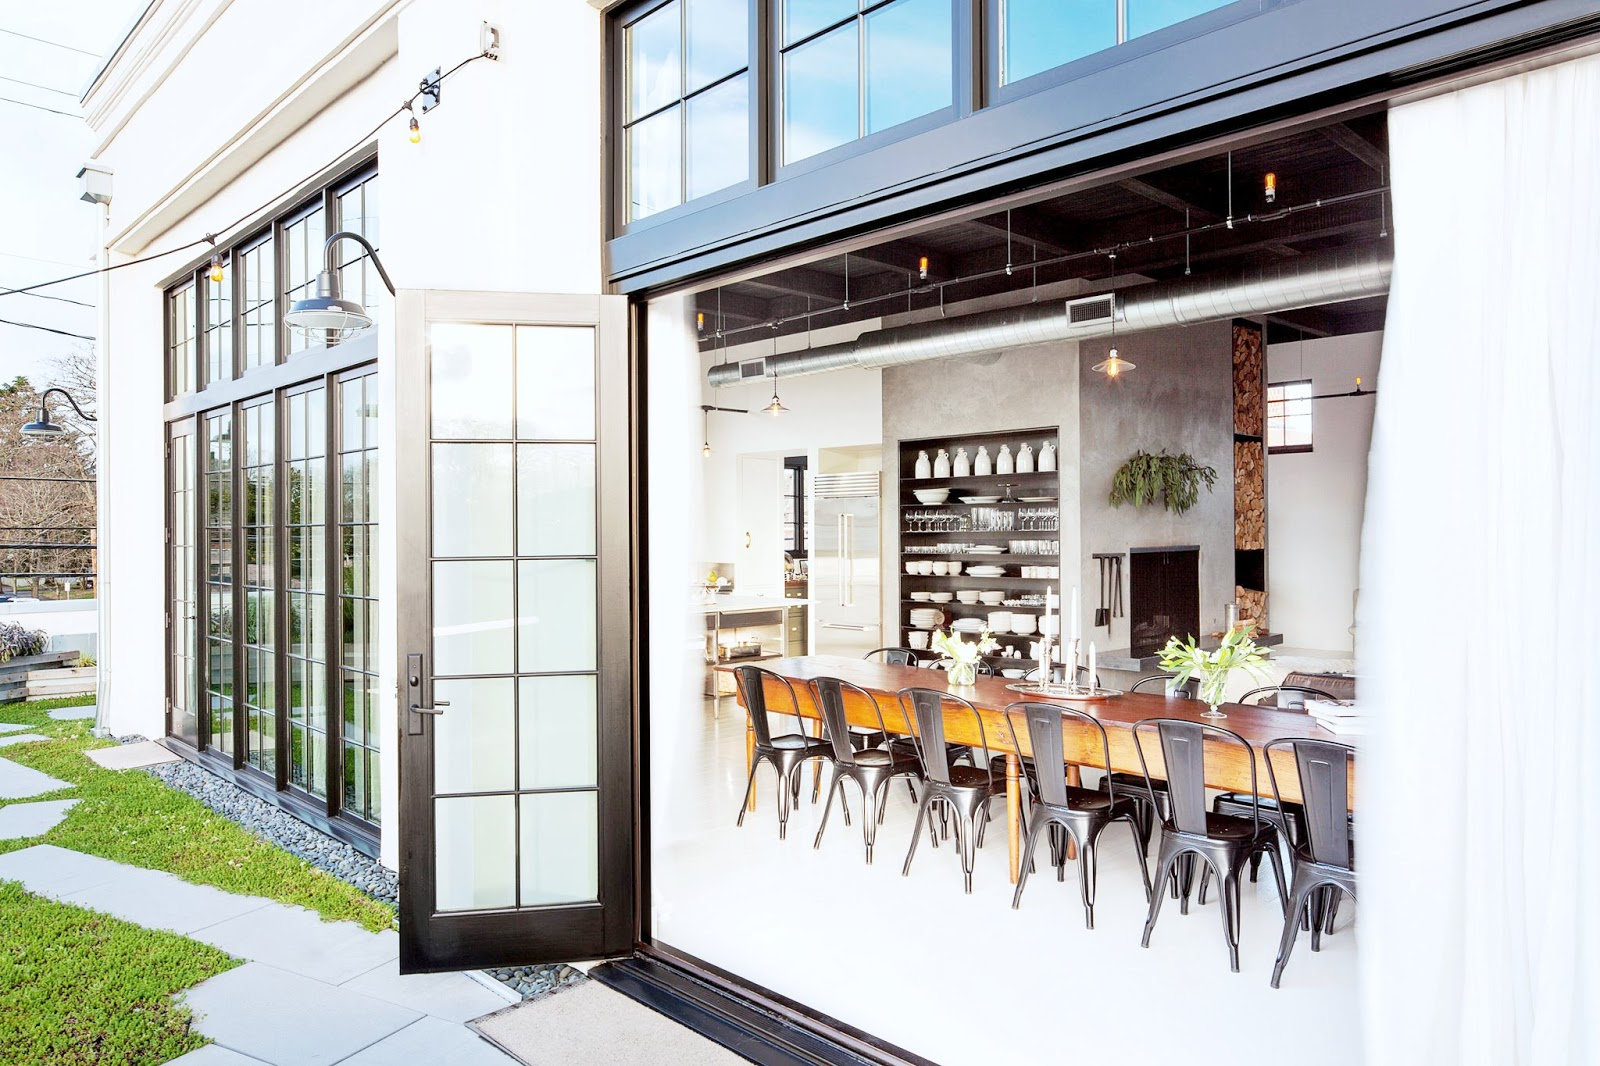 Industrial sleek loft living in portland cococozy for Industrial windows for homes